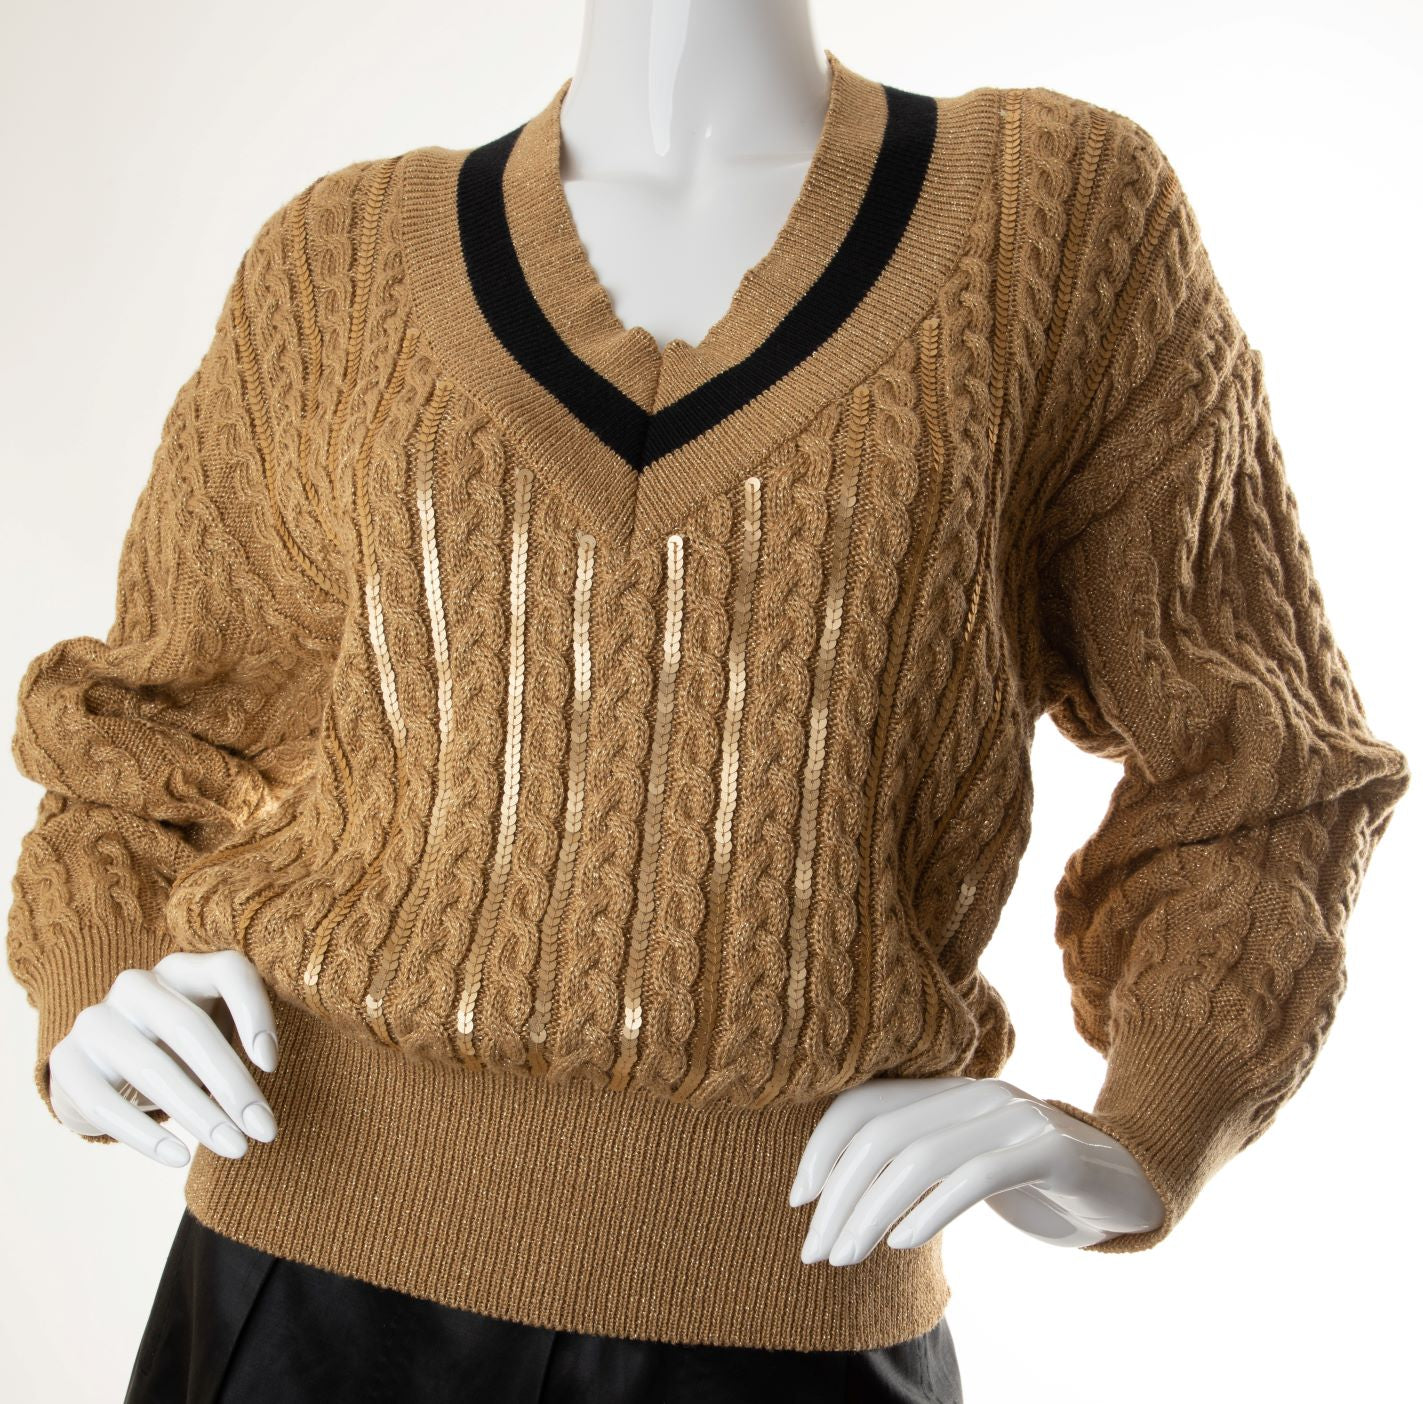 Escada - Metallic Cable Knit Sweater with Sequin Embellishment